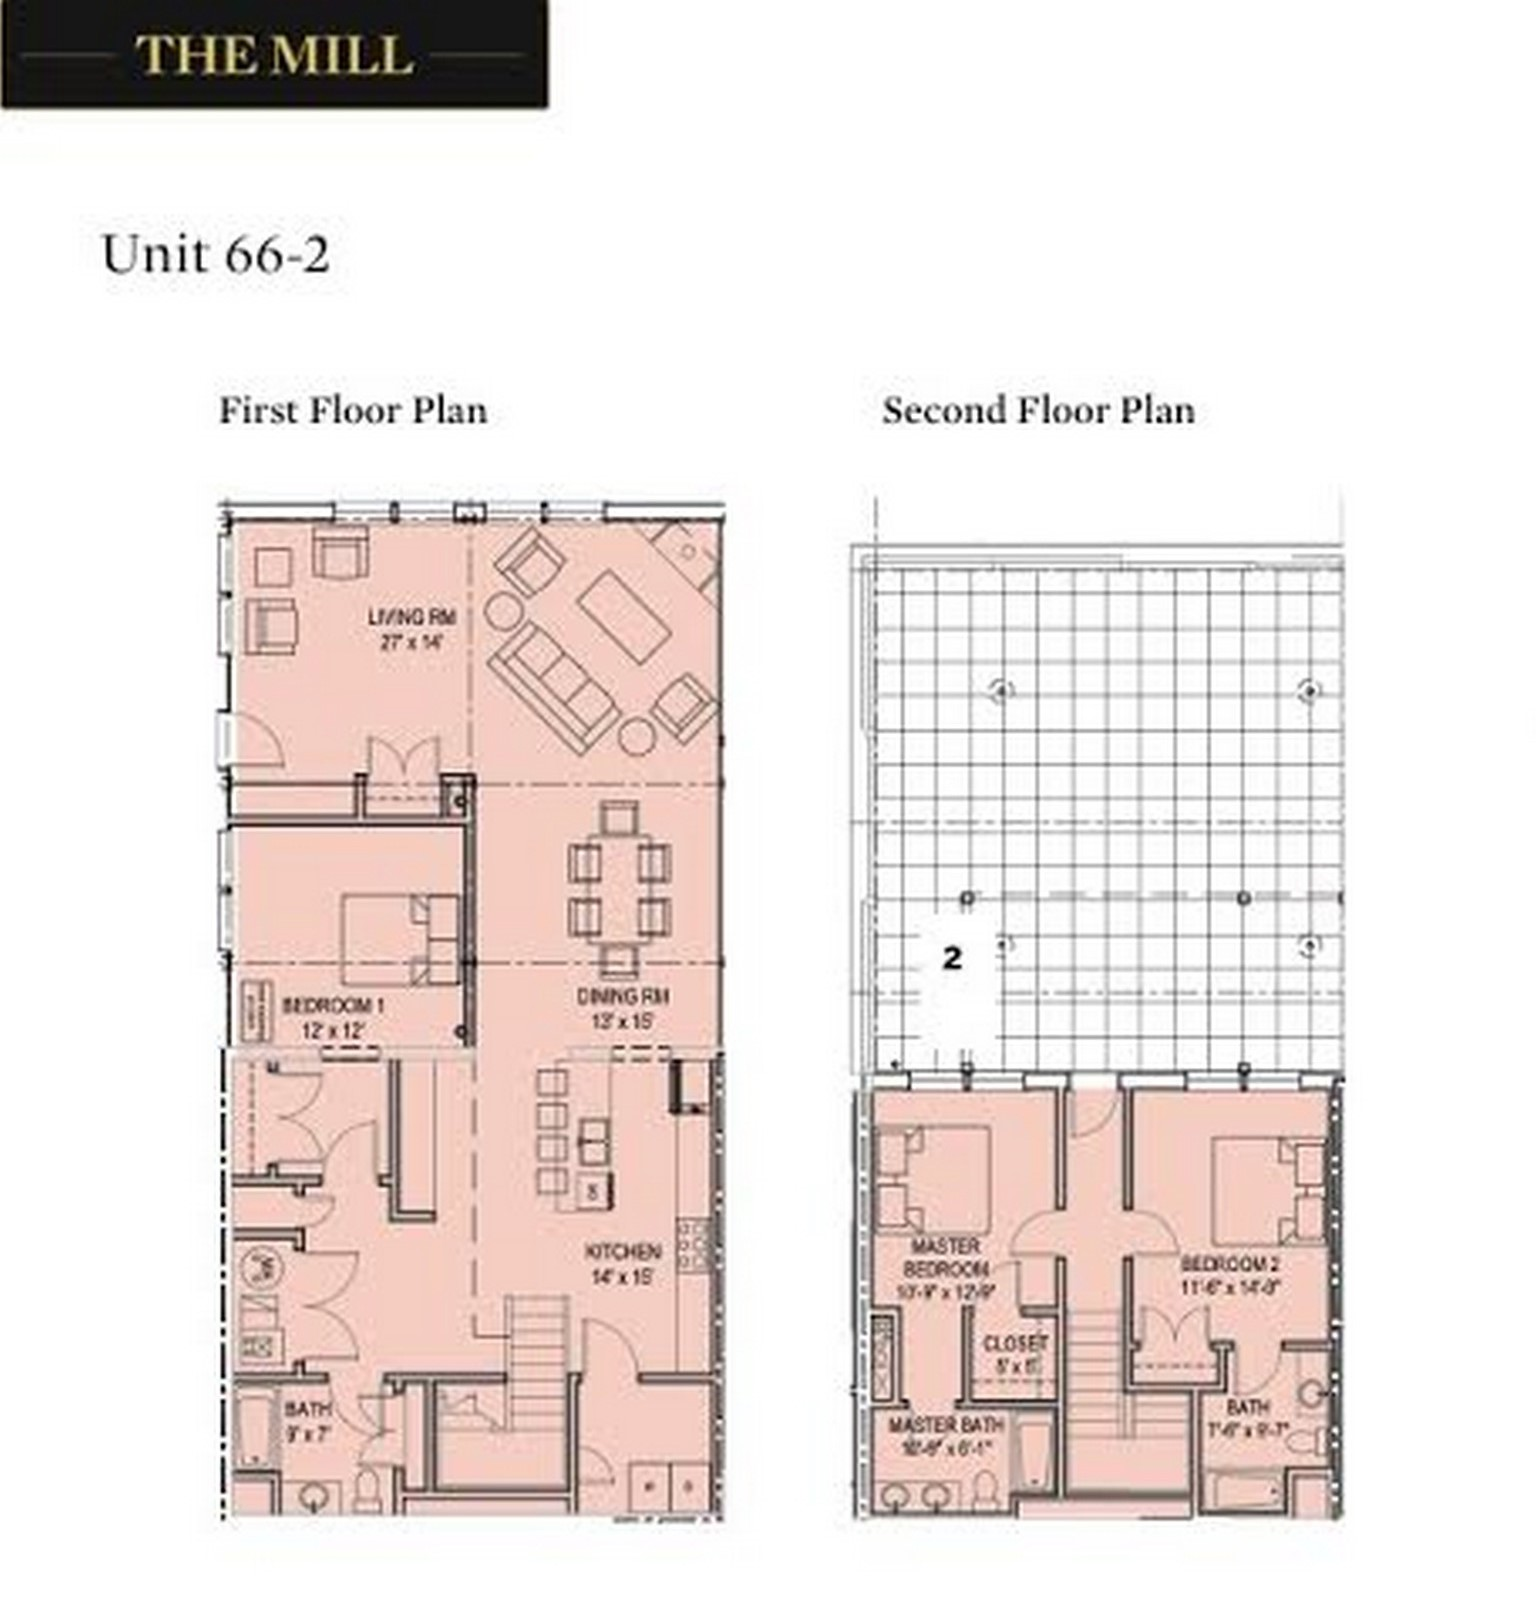 Condominium for Sale at 66-2 High St 66-2 High St Mill Building, Unit C Guilford, Connecticut, 06437 United States